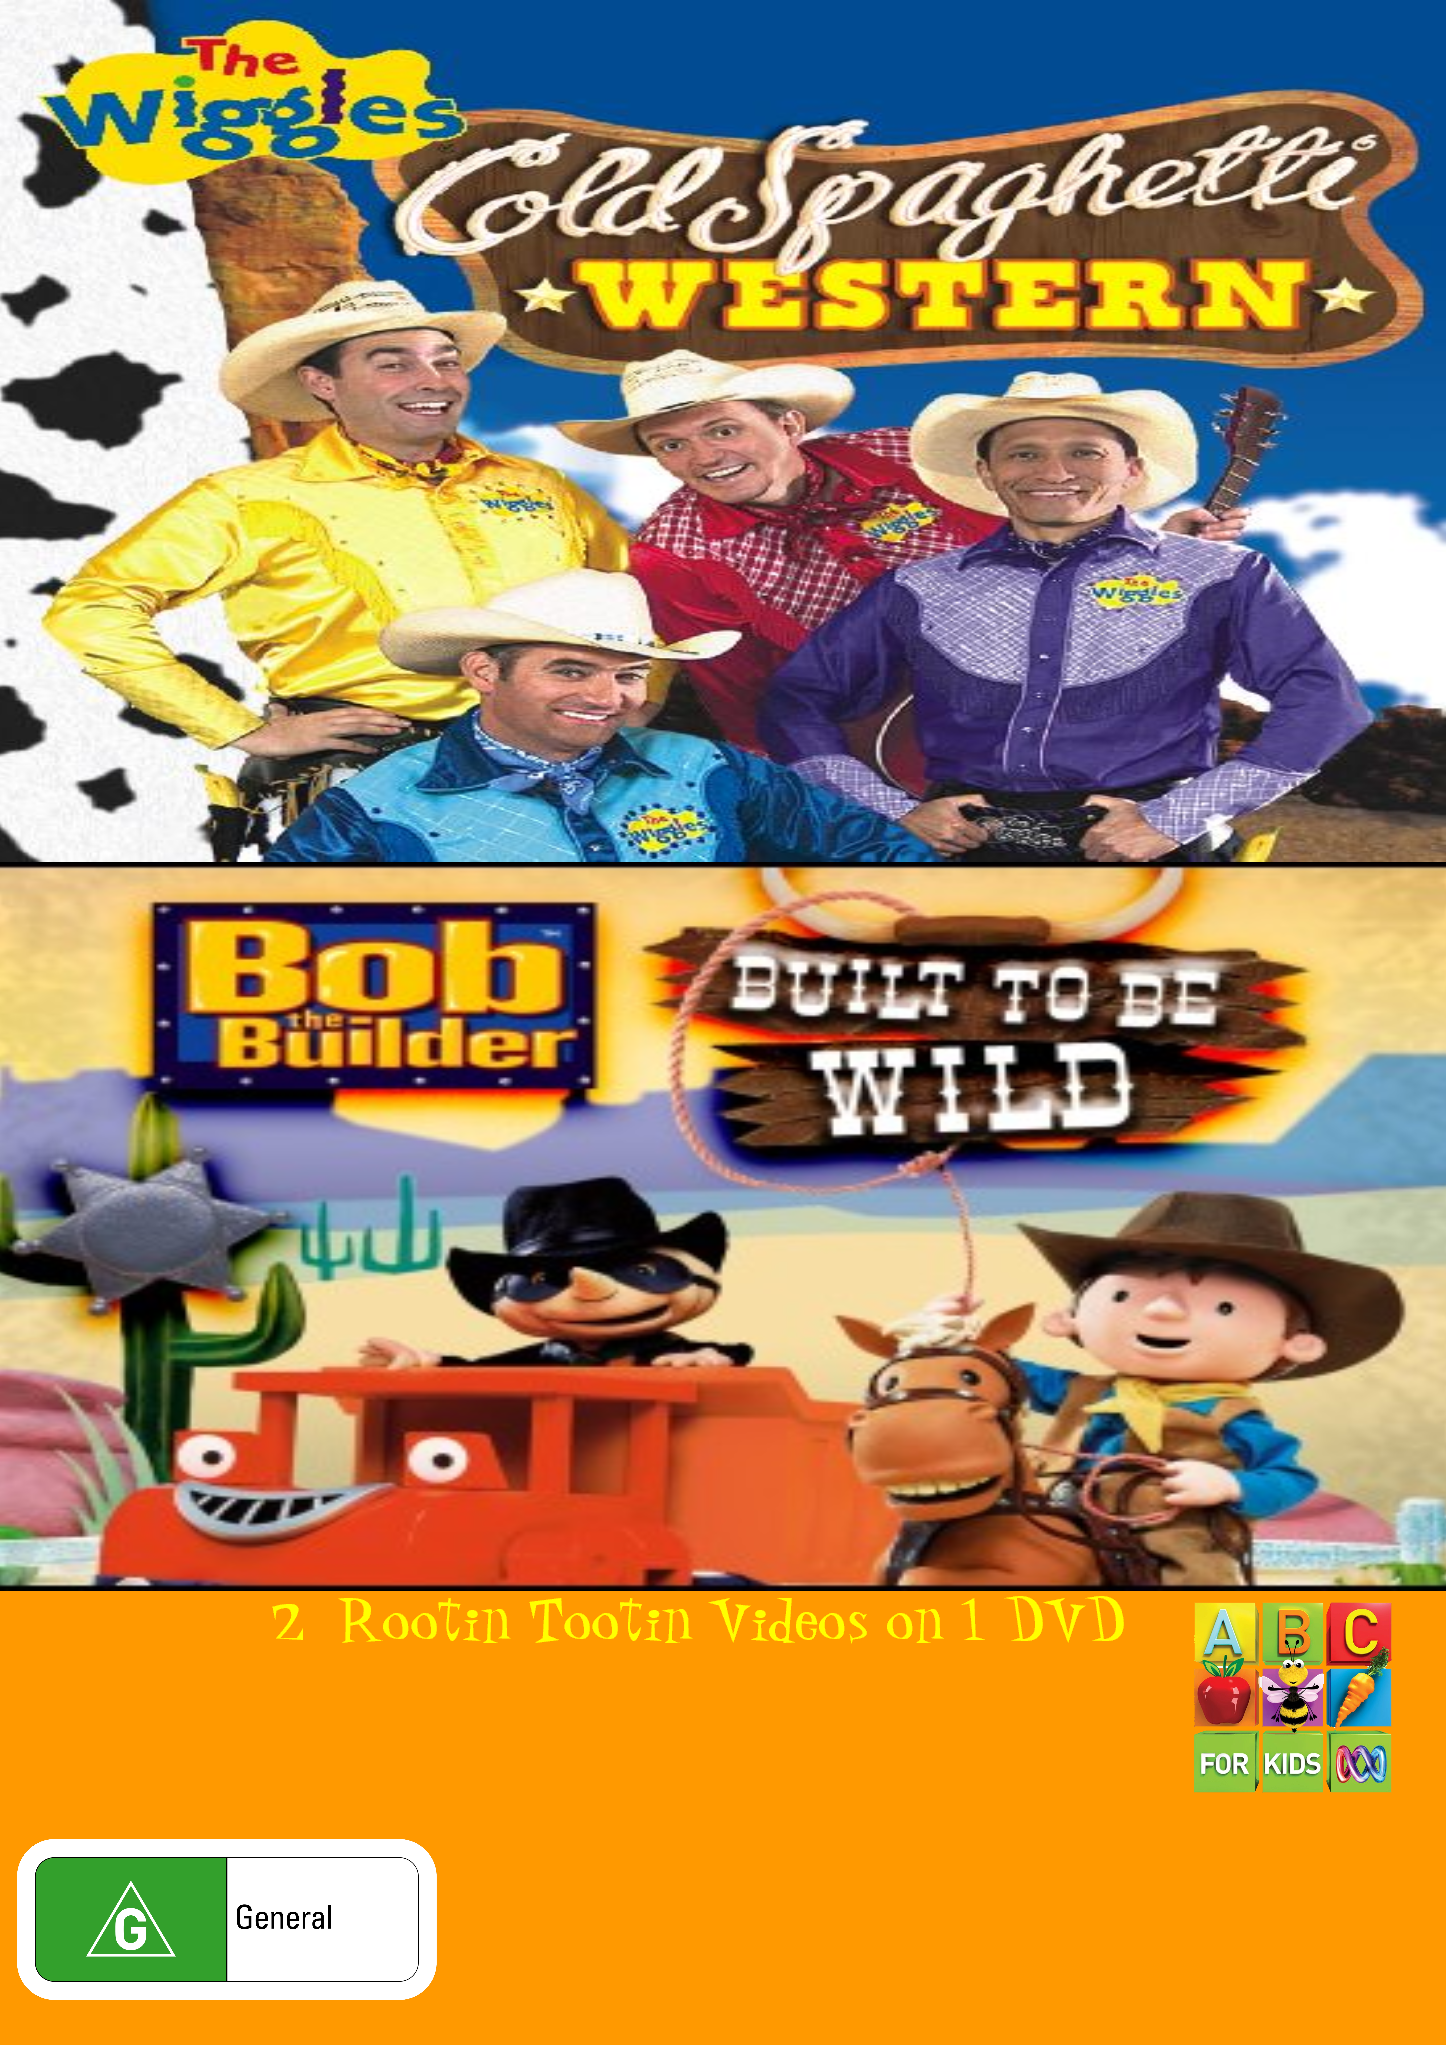 The Wiggles and Bob the Builder Cold Spaghetti Western and Built to Be Wild (video)